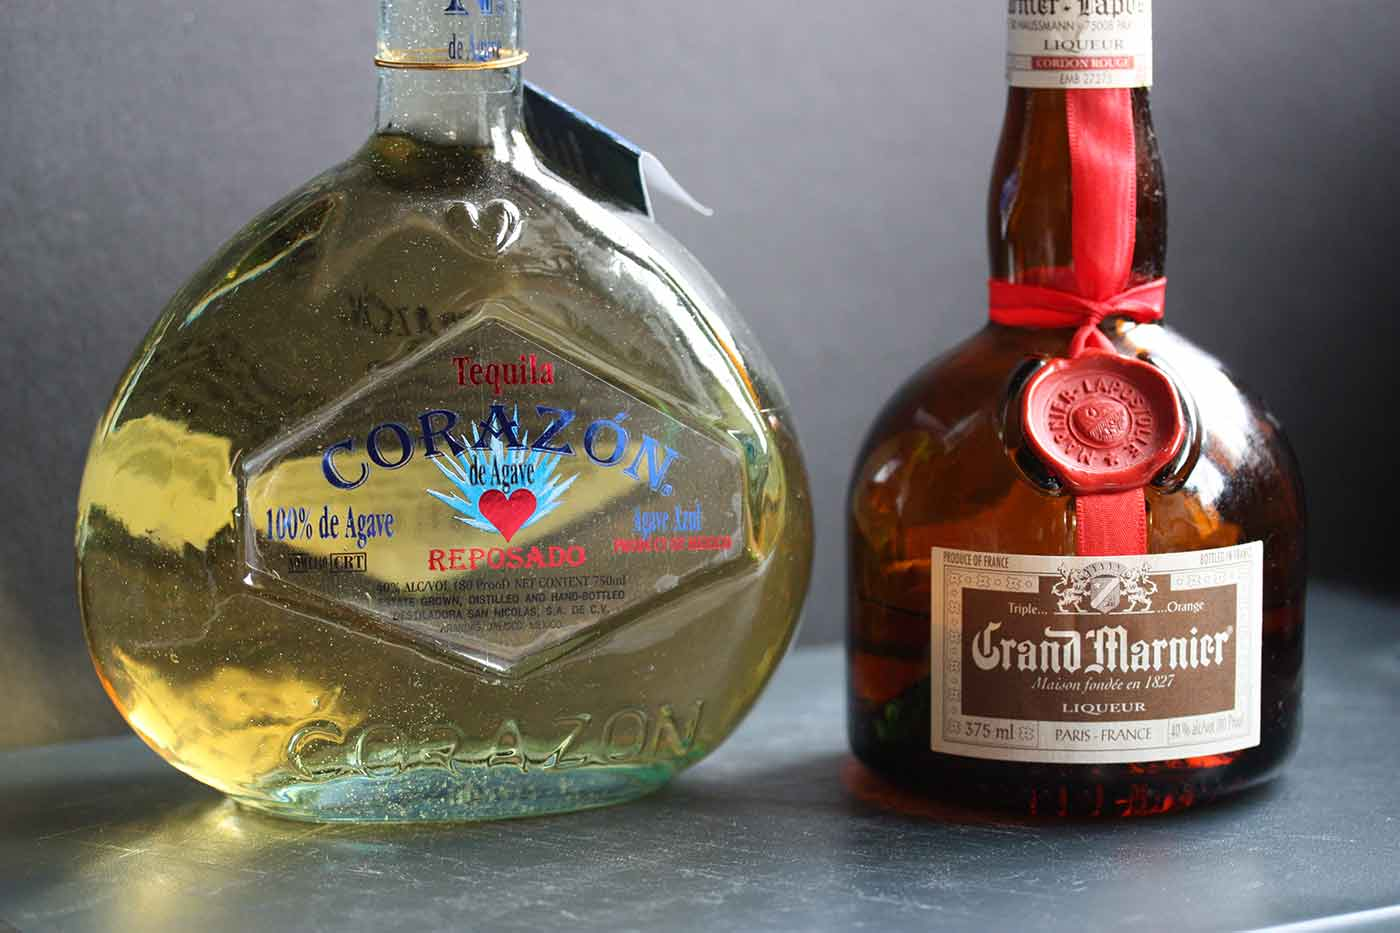 Corazon Reposado Tequila and Grand Marnier, for New Year's Margaritas